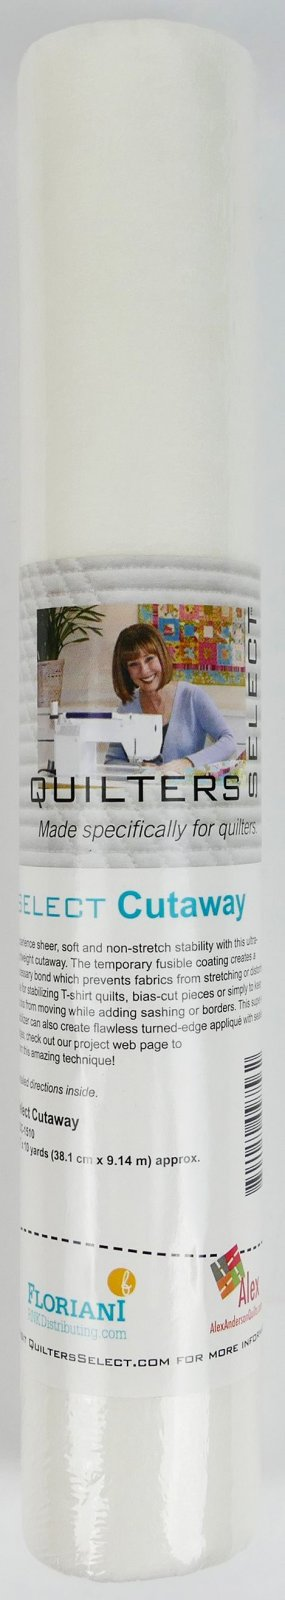 Select Cutaway - 15 x 10 yds - Quilters Select